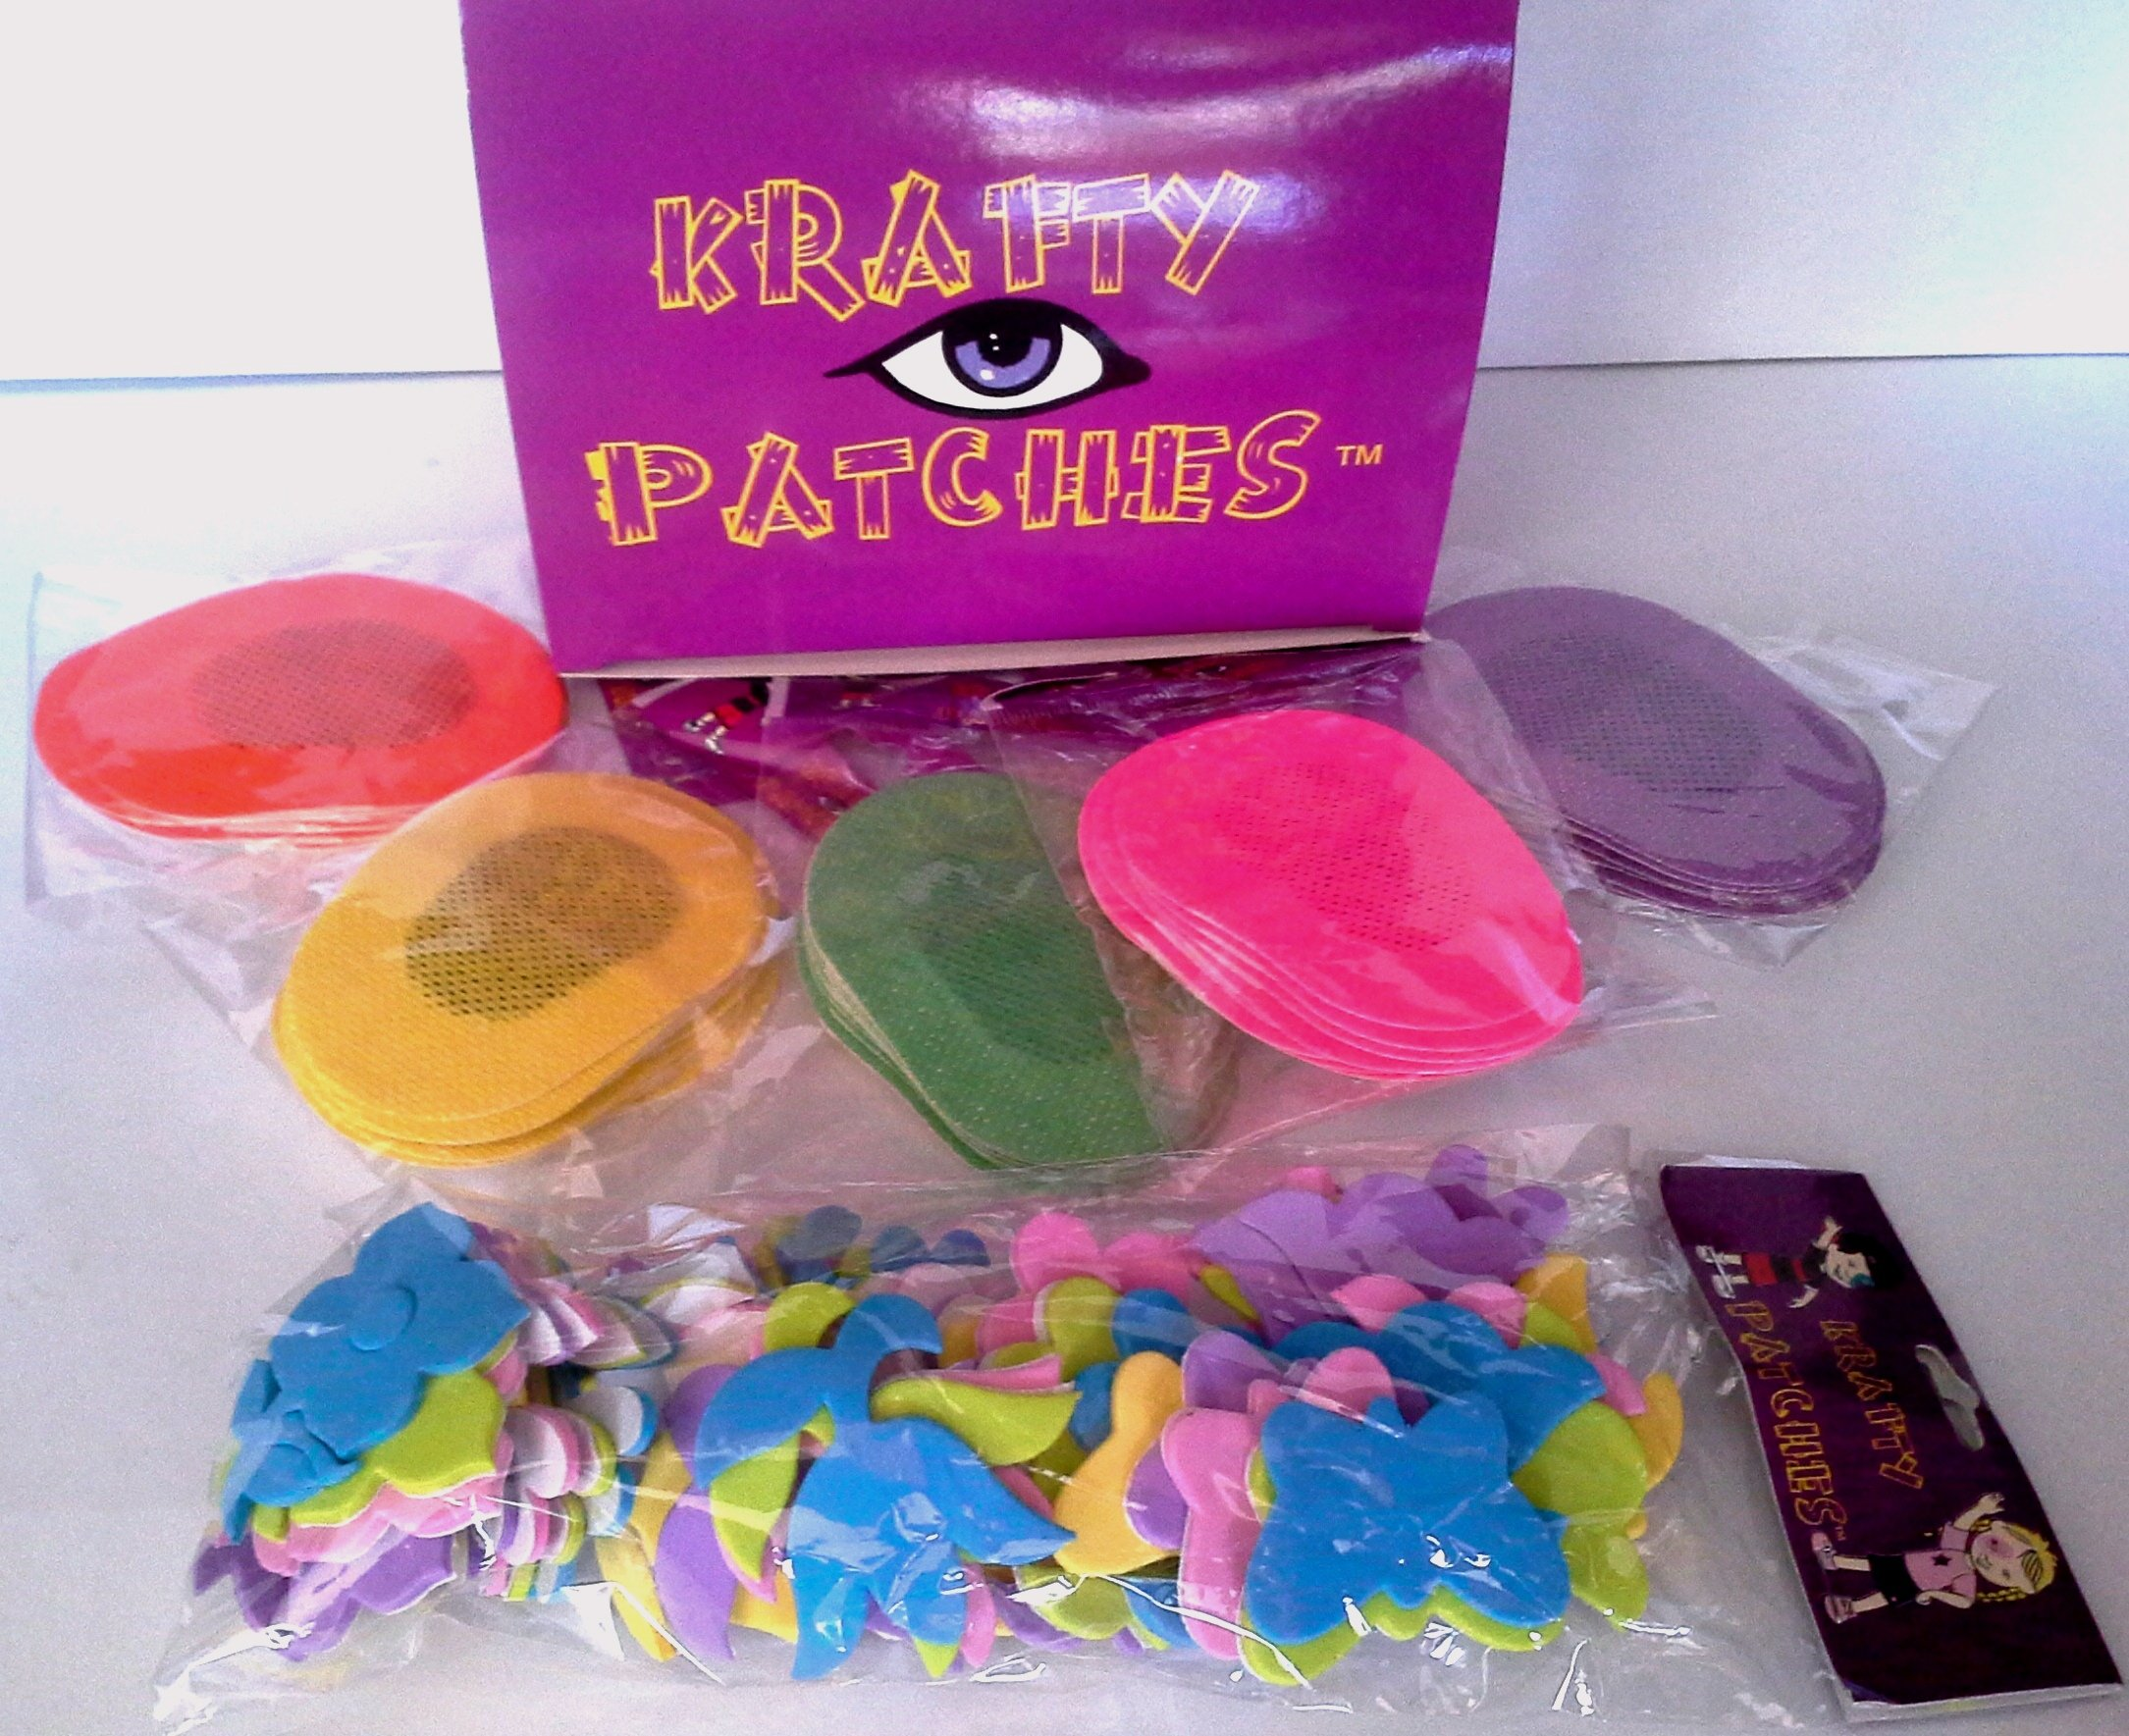 Krafty Eye Patches (GIRL) Medium Size 50 patches & 1 bag foam stickers ages 0 to 4yrs old